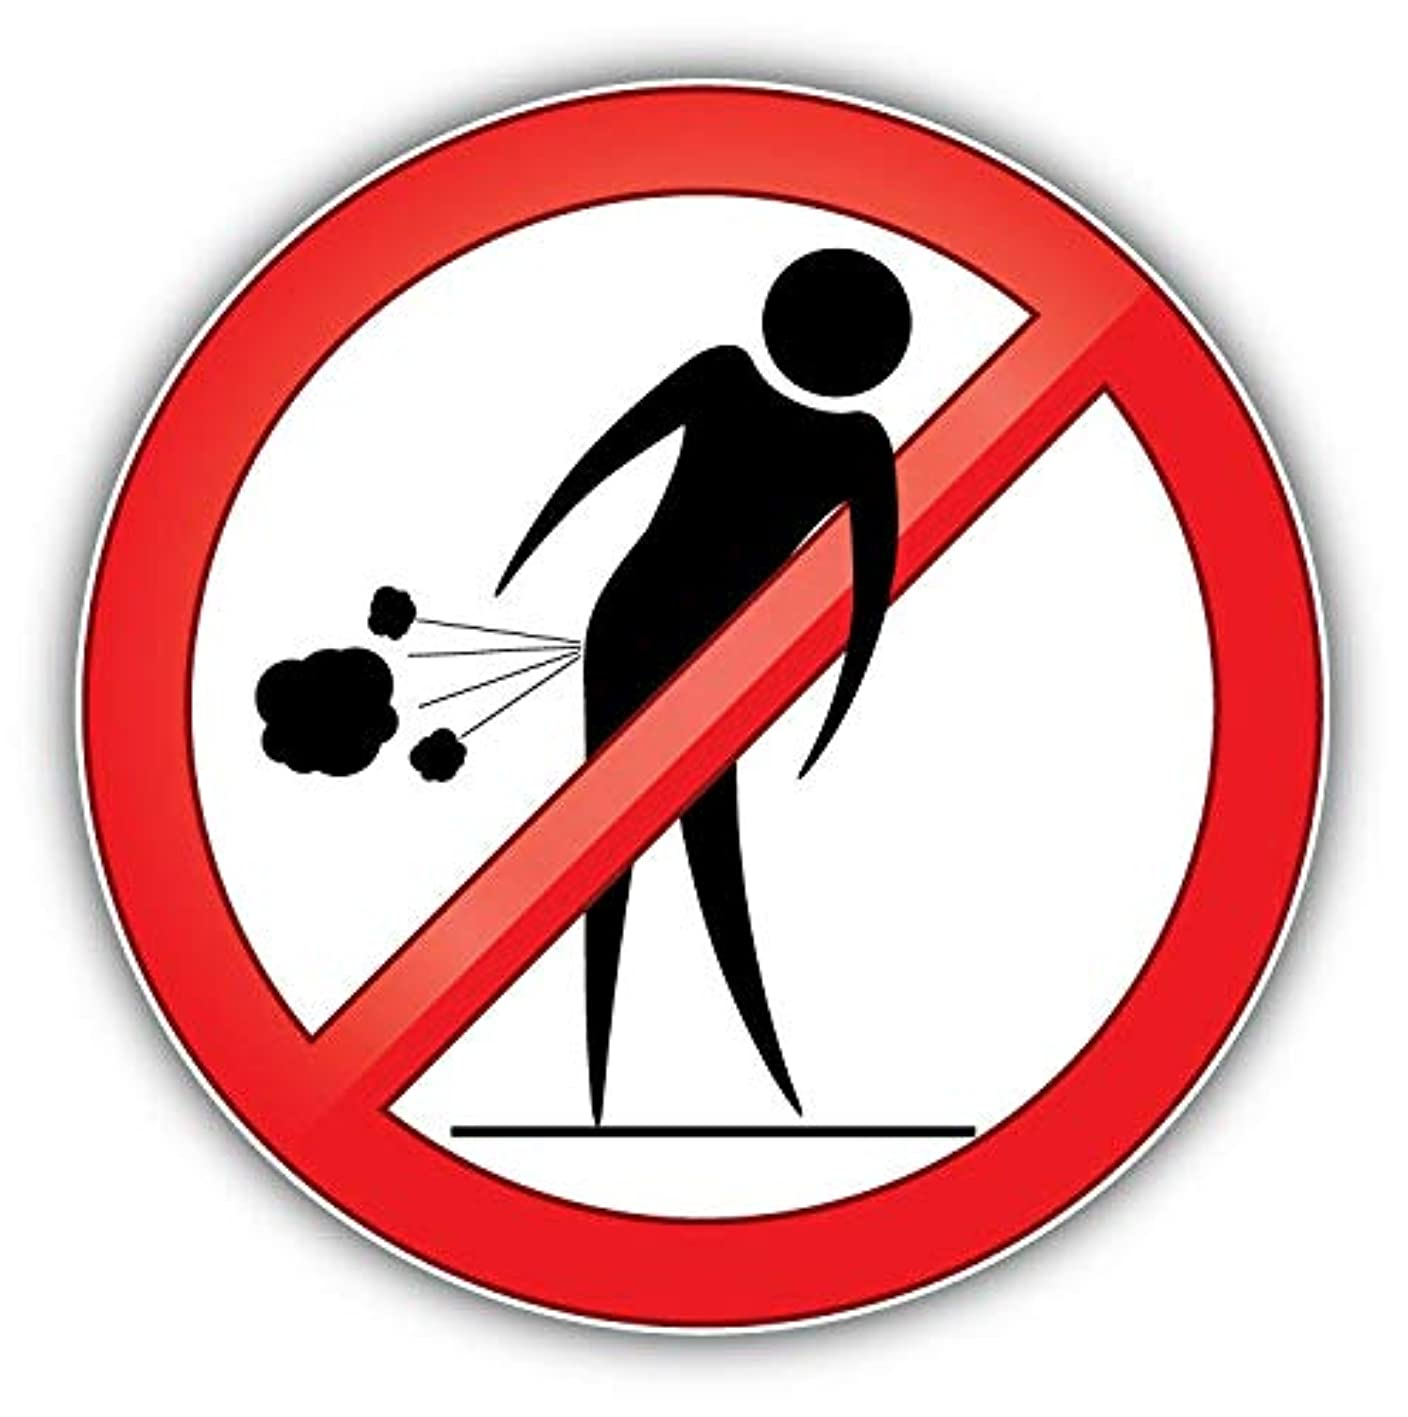 Magnet Forbid Farting People Ban Stop Sign Vinyl Magnet Bumper Sticker Magnet Flexible Vinyl Magnetic 5 oqtrpdsxdcx330